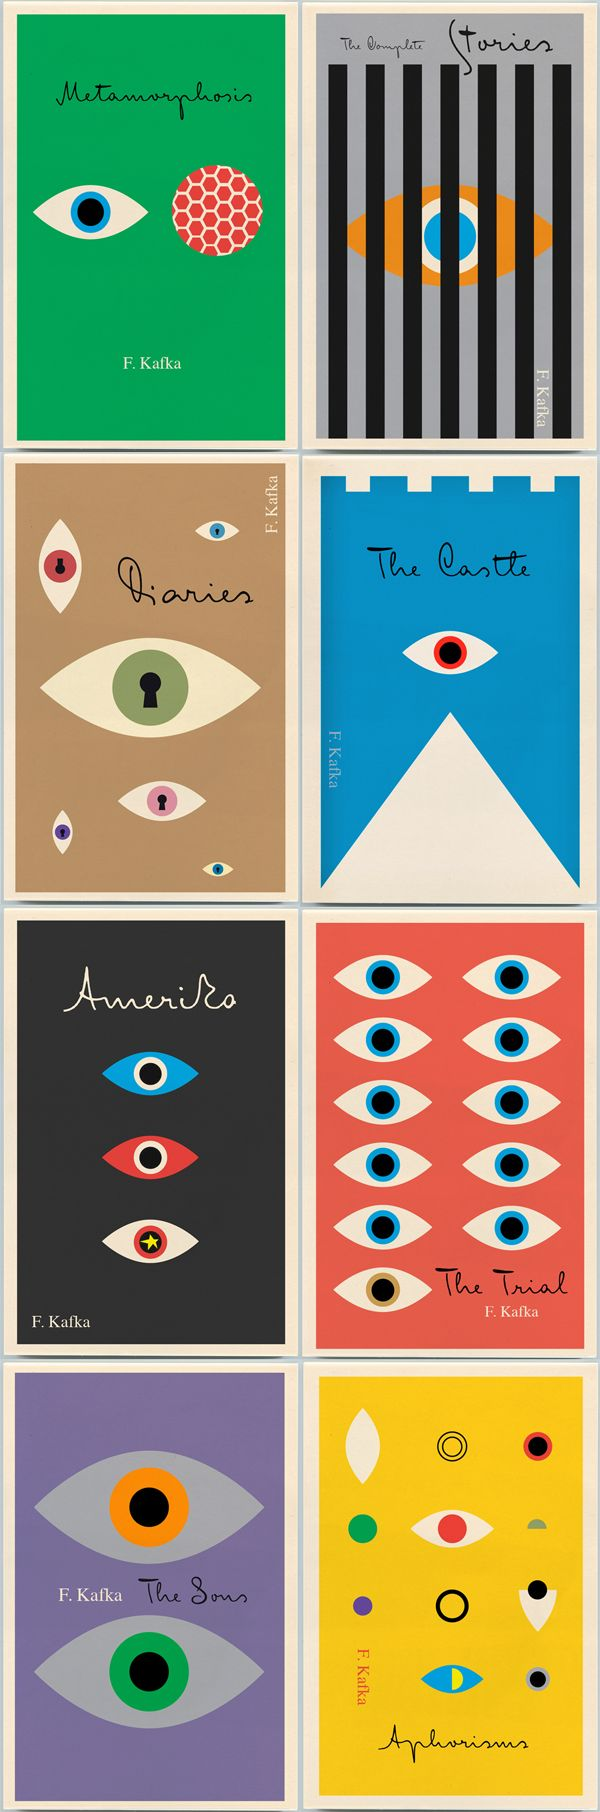 """Peter Mendelsund's Kafka backlist, which we first told you about here, published by Schocken Books, 2011."" via Flavorwire"